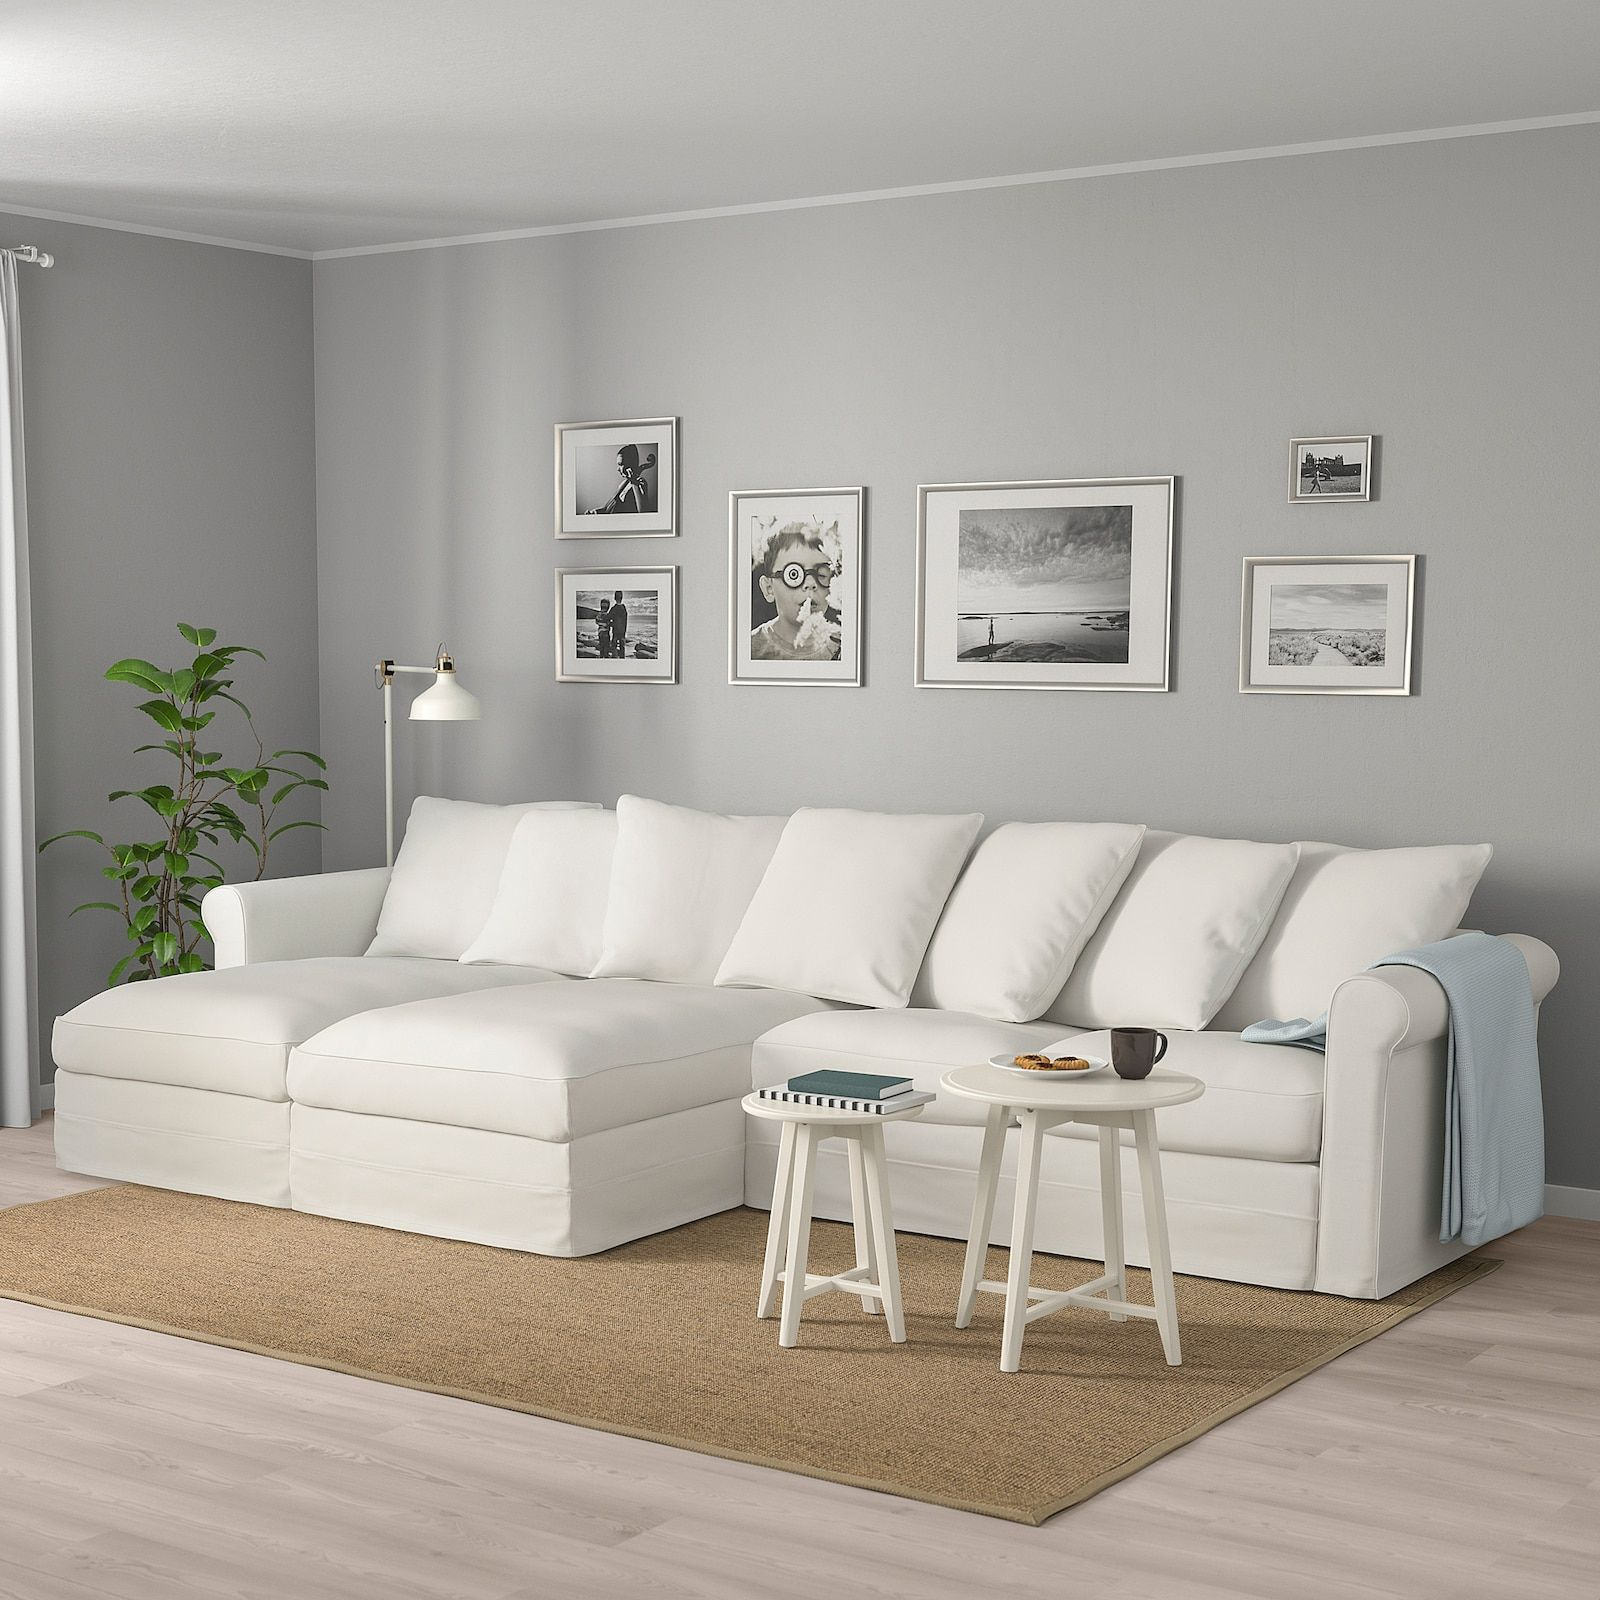 Gronlid Sectional 4 Seat With Chaise Inseros White Order Here Ikea In 2020 Deep Sofa Ikea Sofa Deep Seating